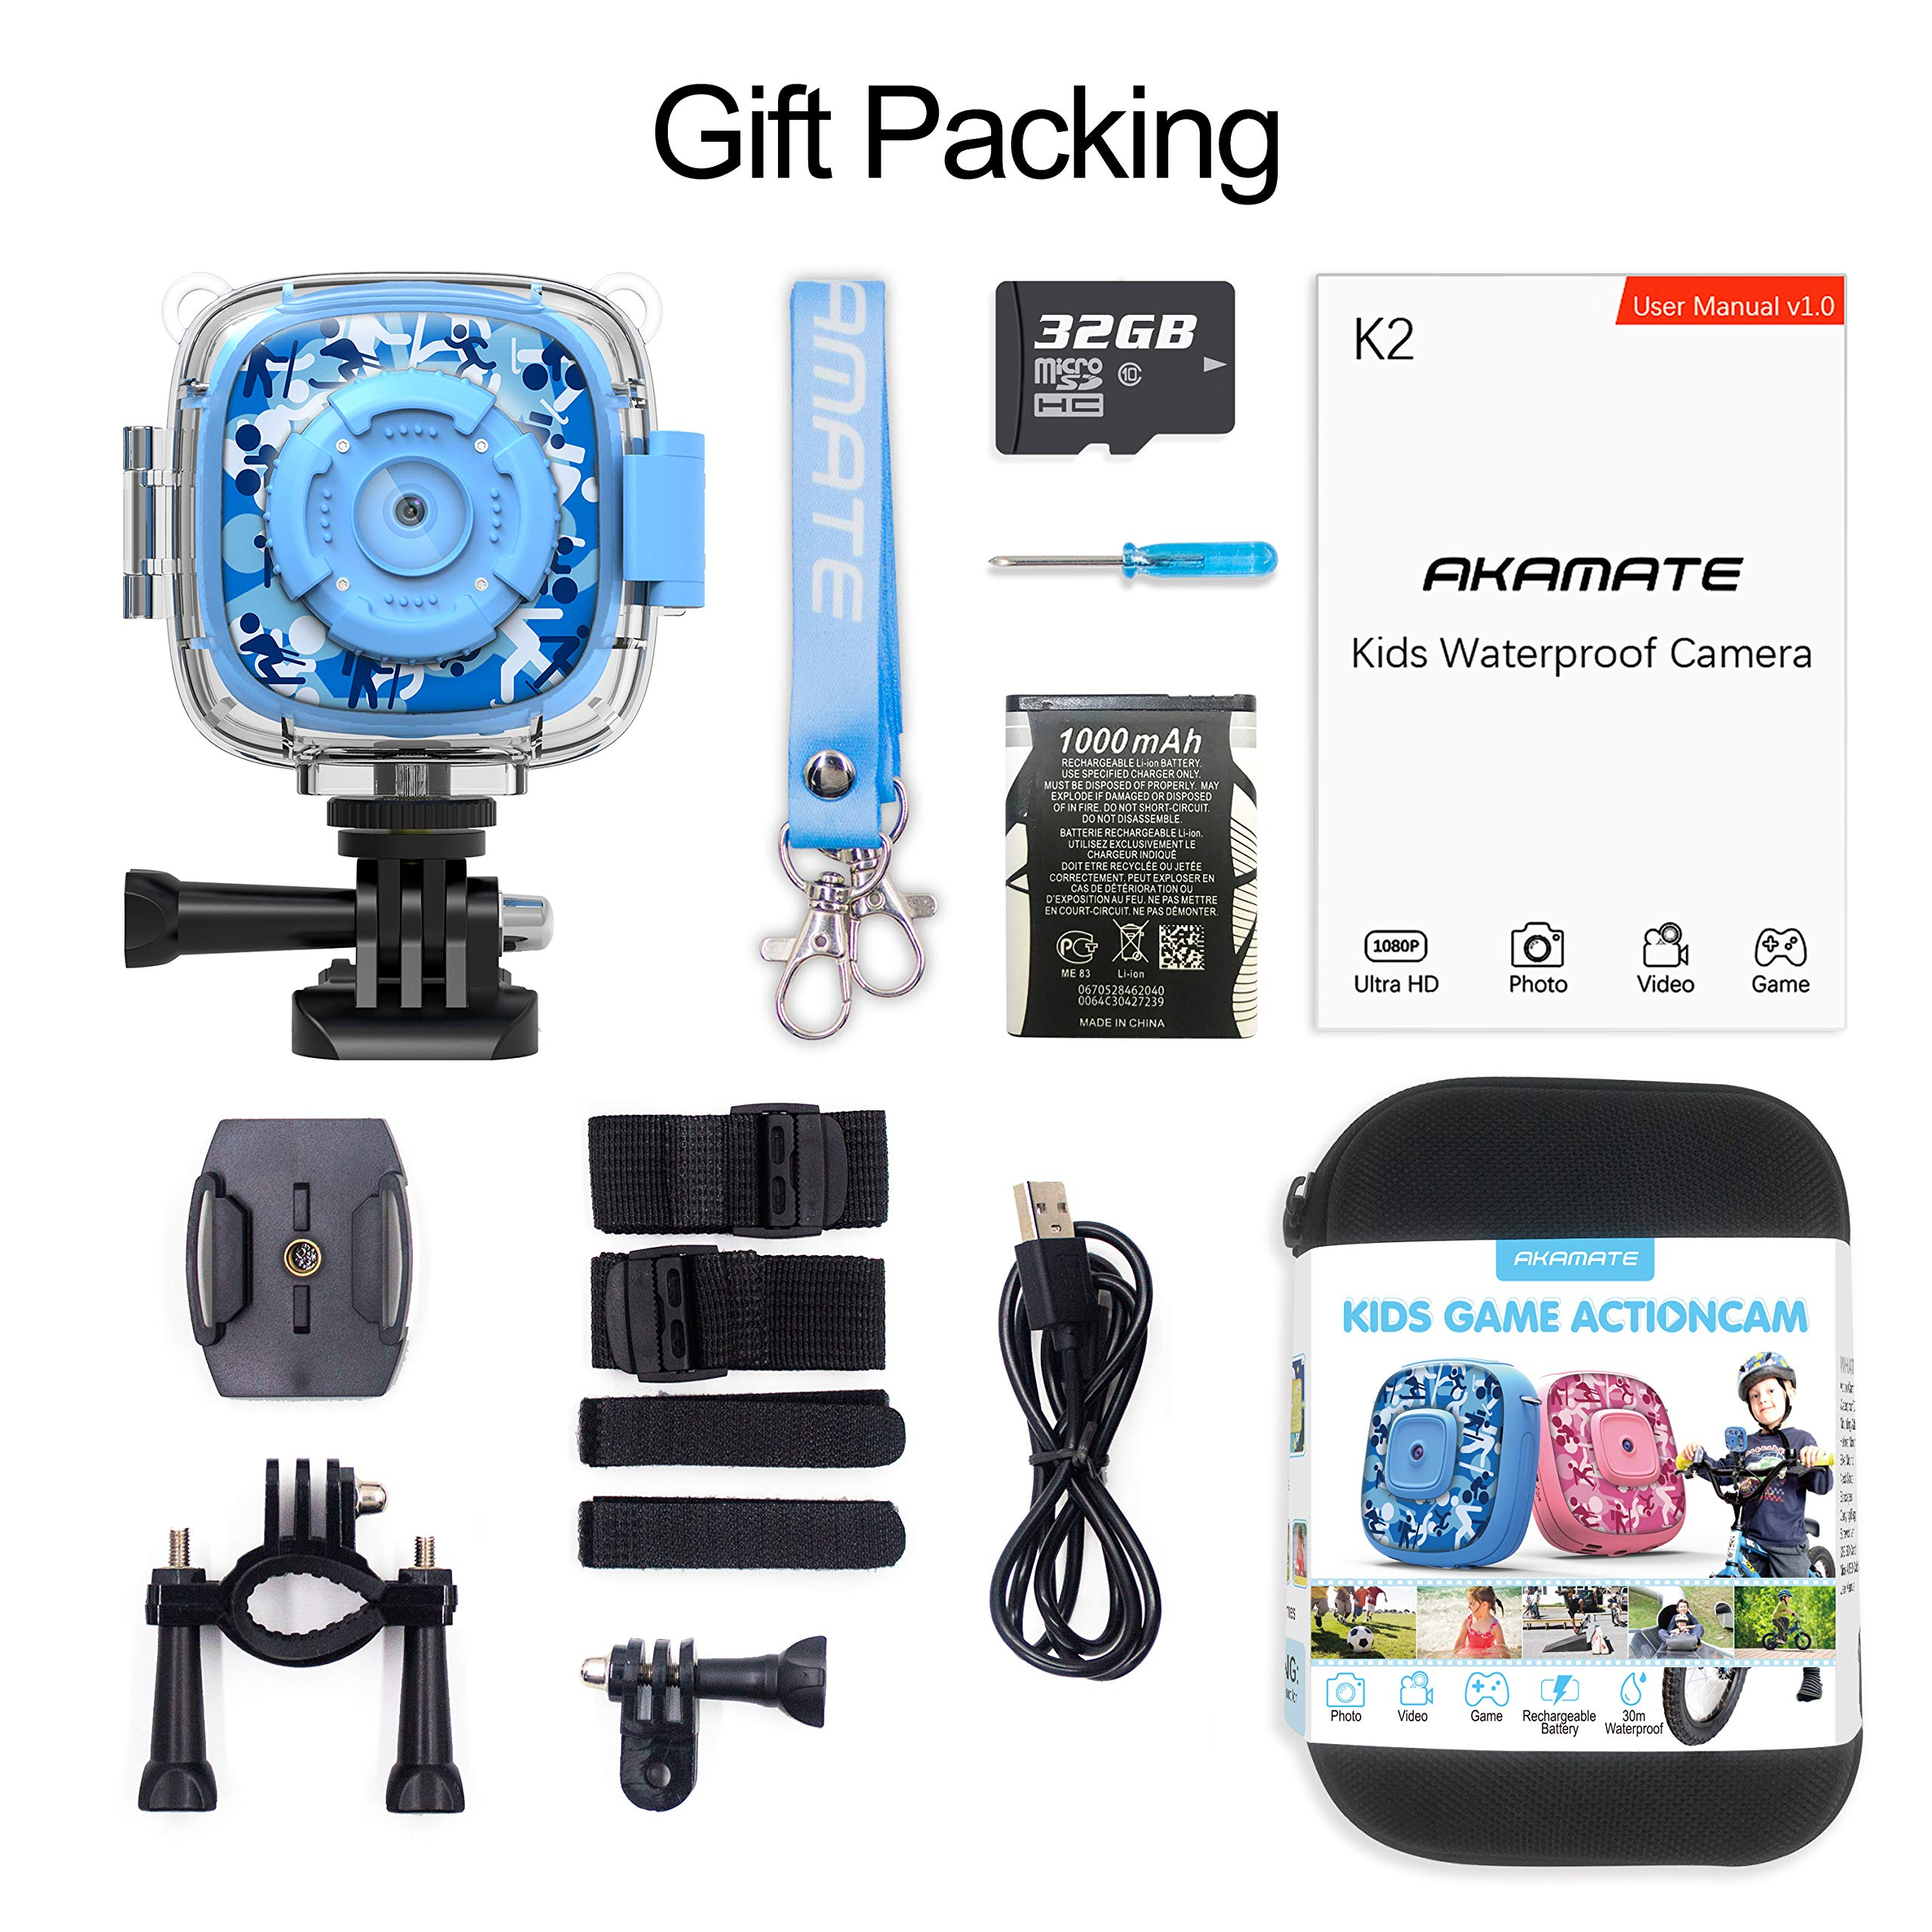 AKAMATE Kids Action Camera Waterproof Video Digital Children Cam 1080P HD Sports Camera Camcorder for Boys Girls, Build-in 3 Games, 32GB SD Card (Blue) by AKAMATE (Image #6)